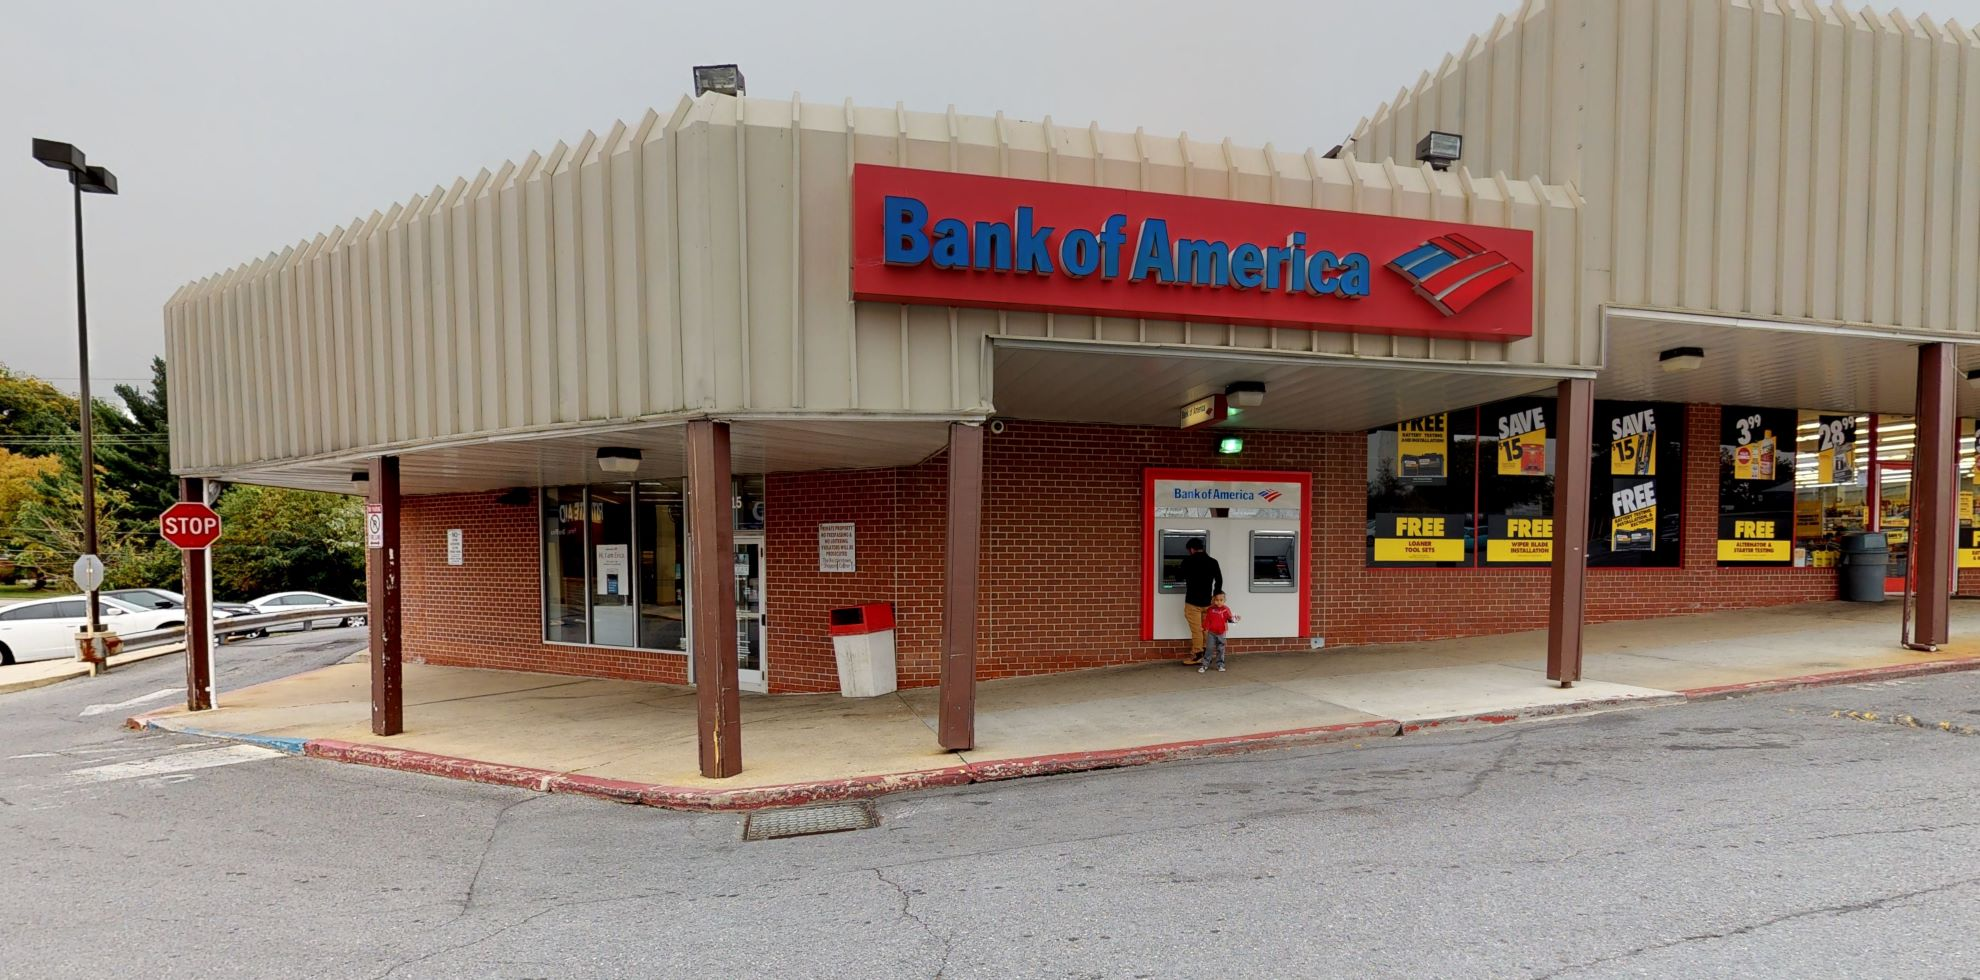 Bank of America financial center with drive-thru ATM | 11915 Reisterstown Rd, Reisterstown, MD 21136